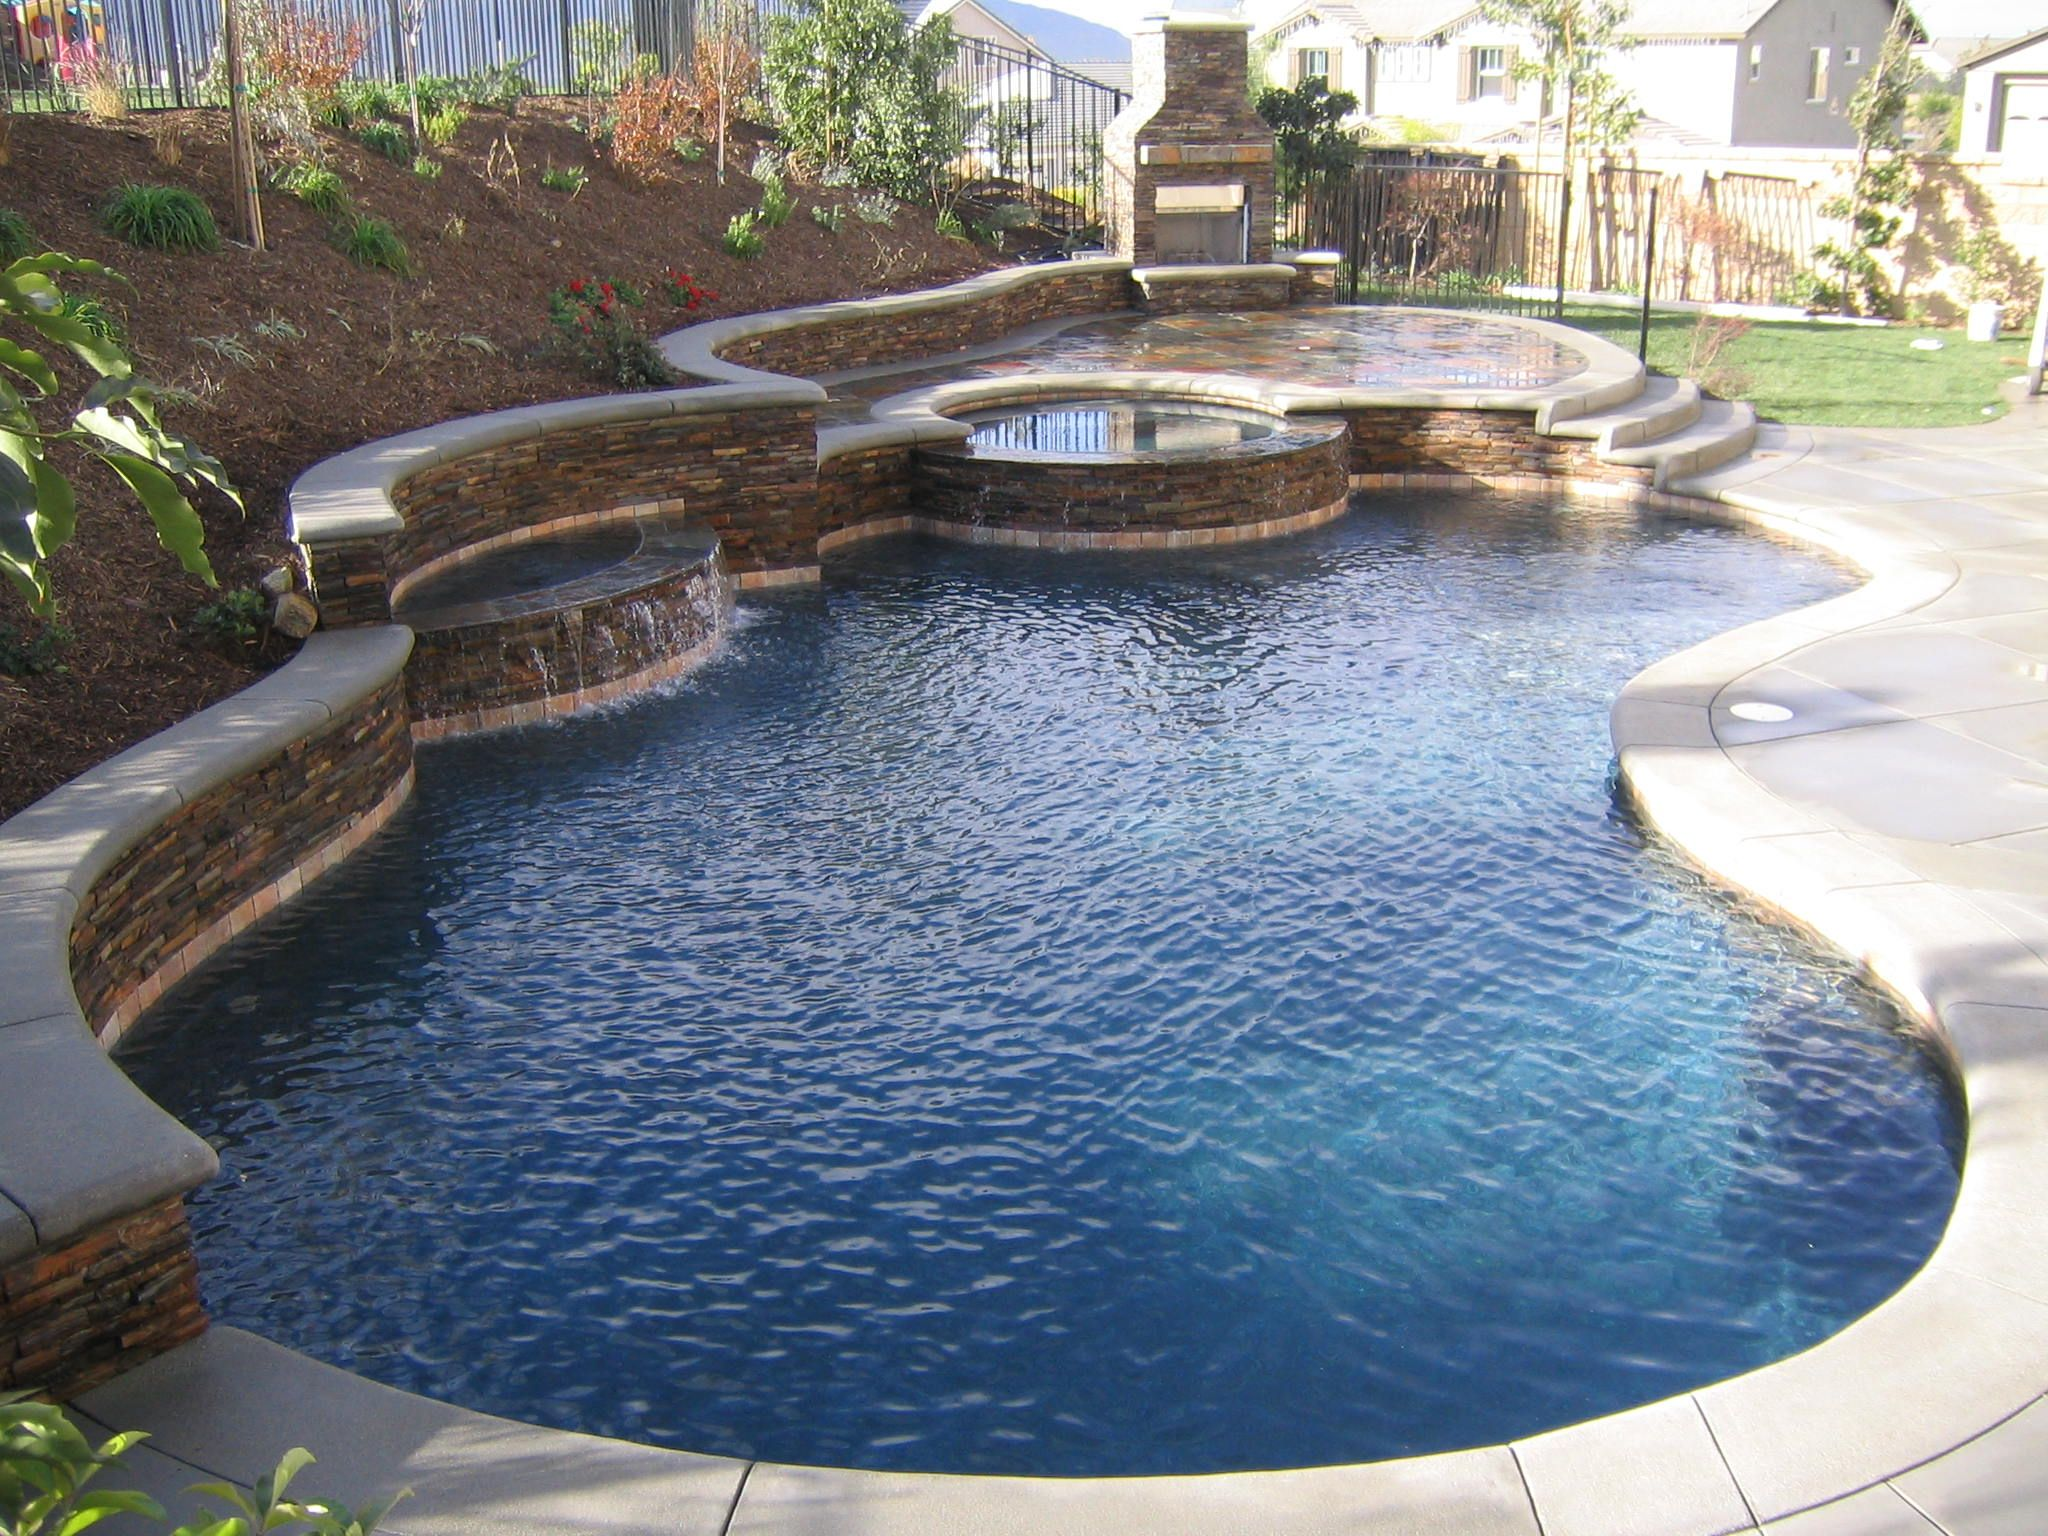 Pool Designs For Small Backyards | Pool & Landscape Design ... on Outdoor Kitchen With Pool Ideas id=18006